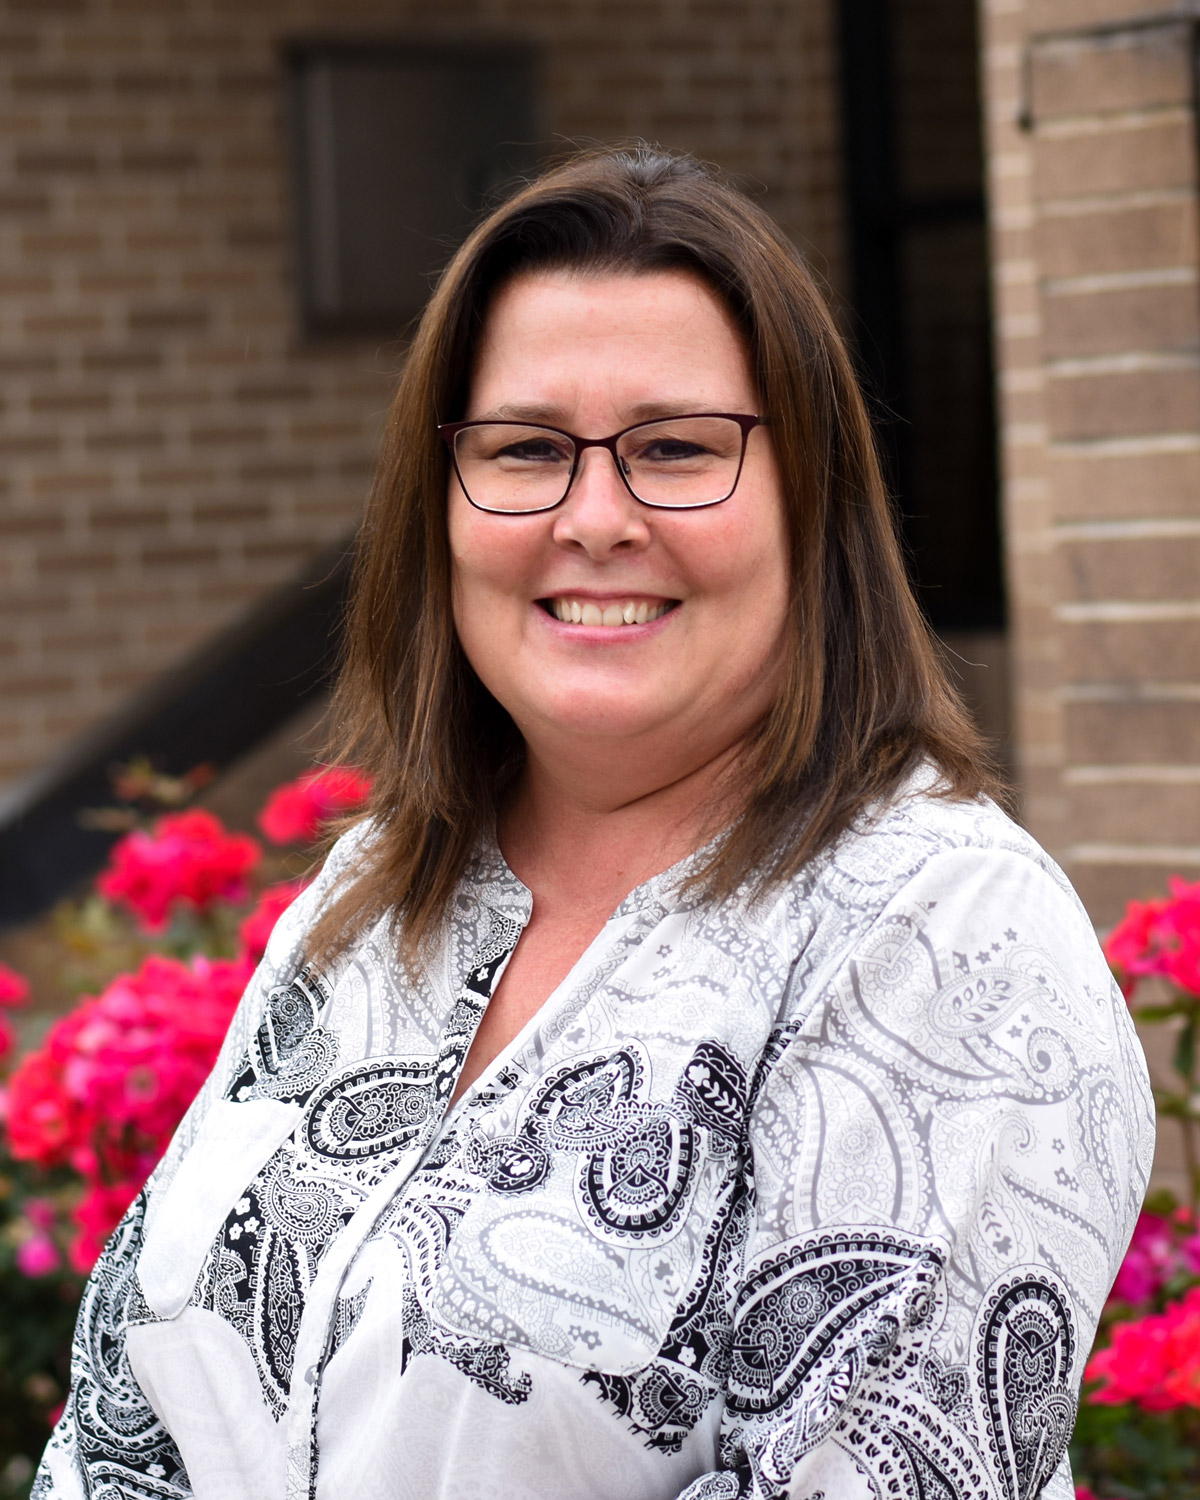 Congratulations to Melissa Sarlouis, who has been promoted to Moxham Branch Manager and Chief Compliance Officer!